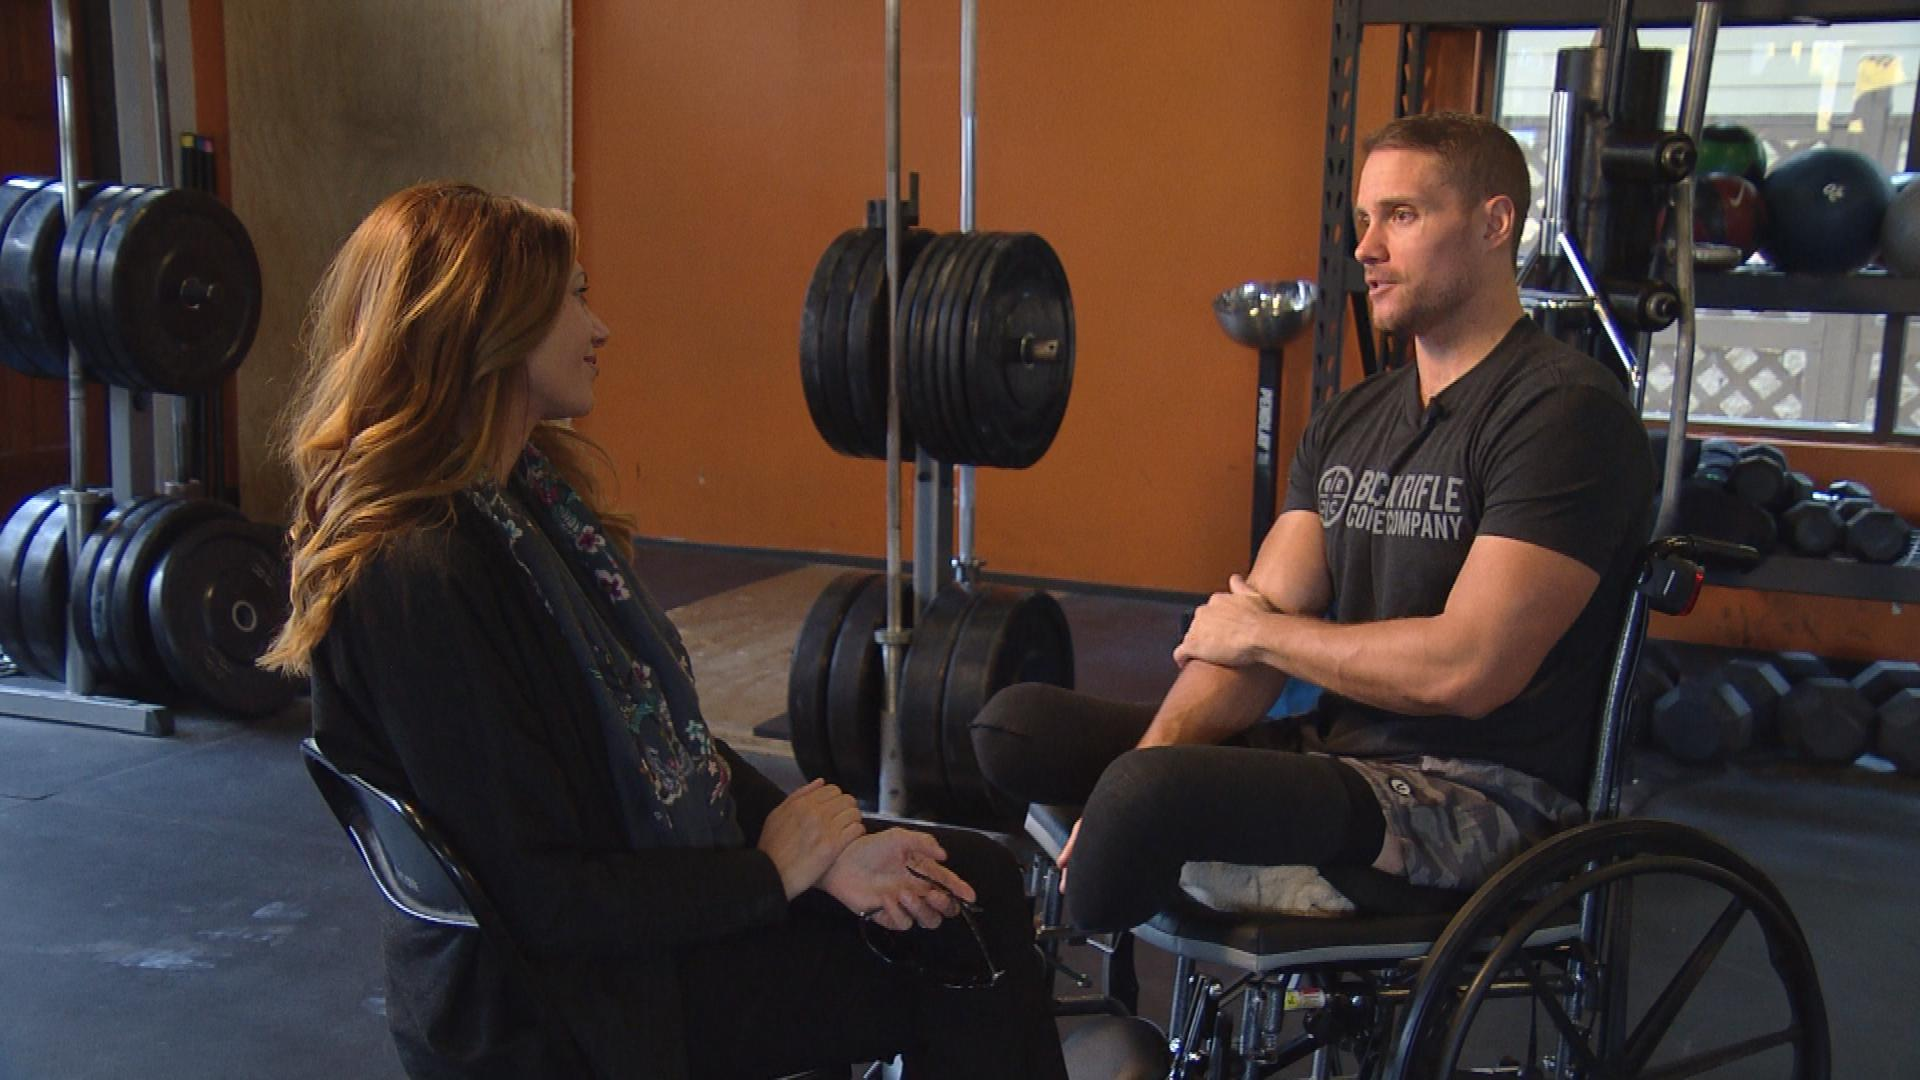 CBS4's Jennifer Brice interviews Craig Towler. (credit: CBS)